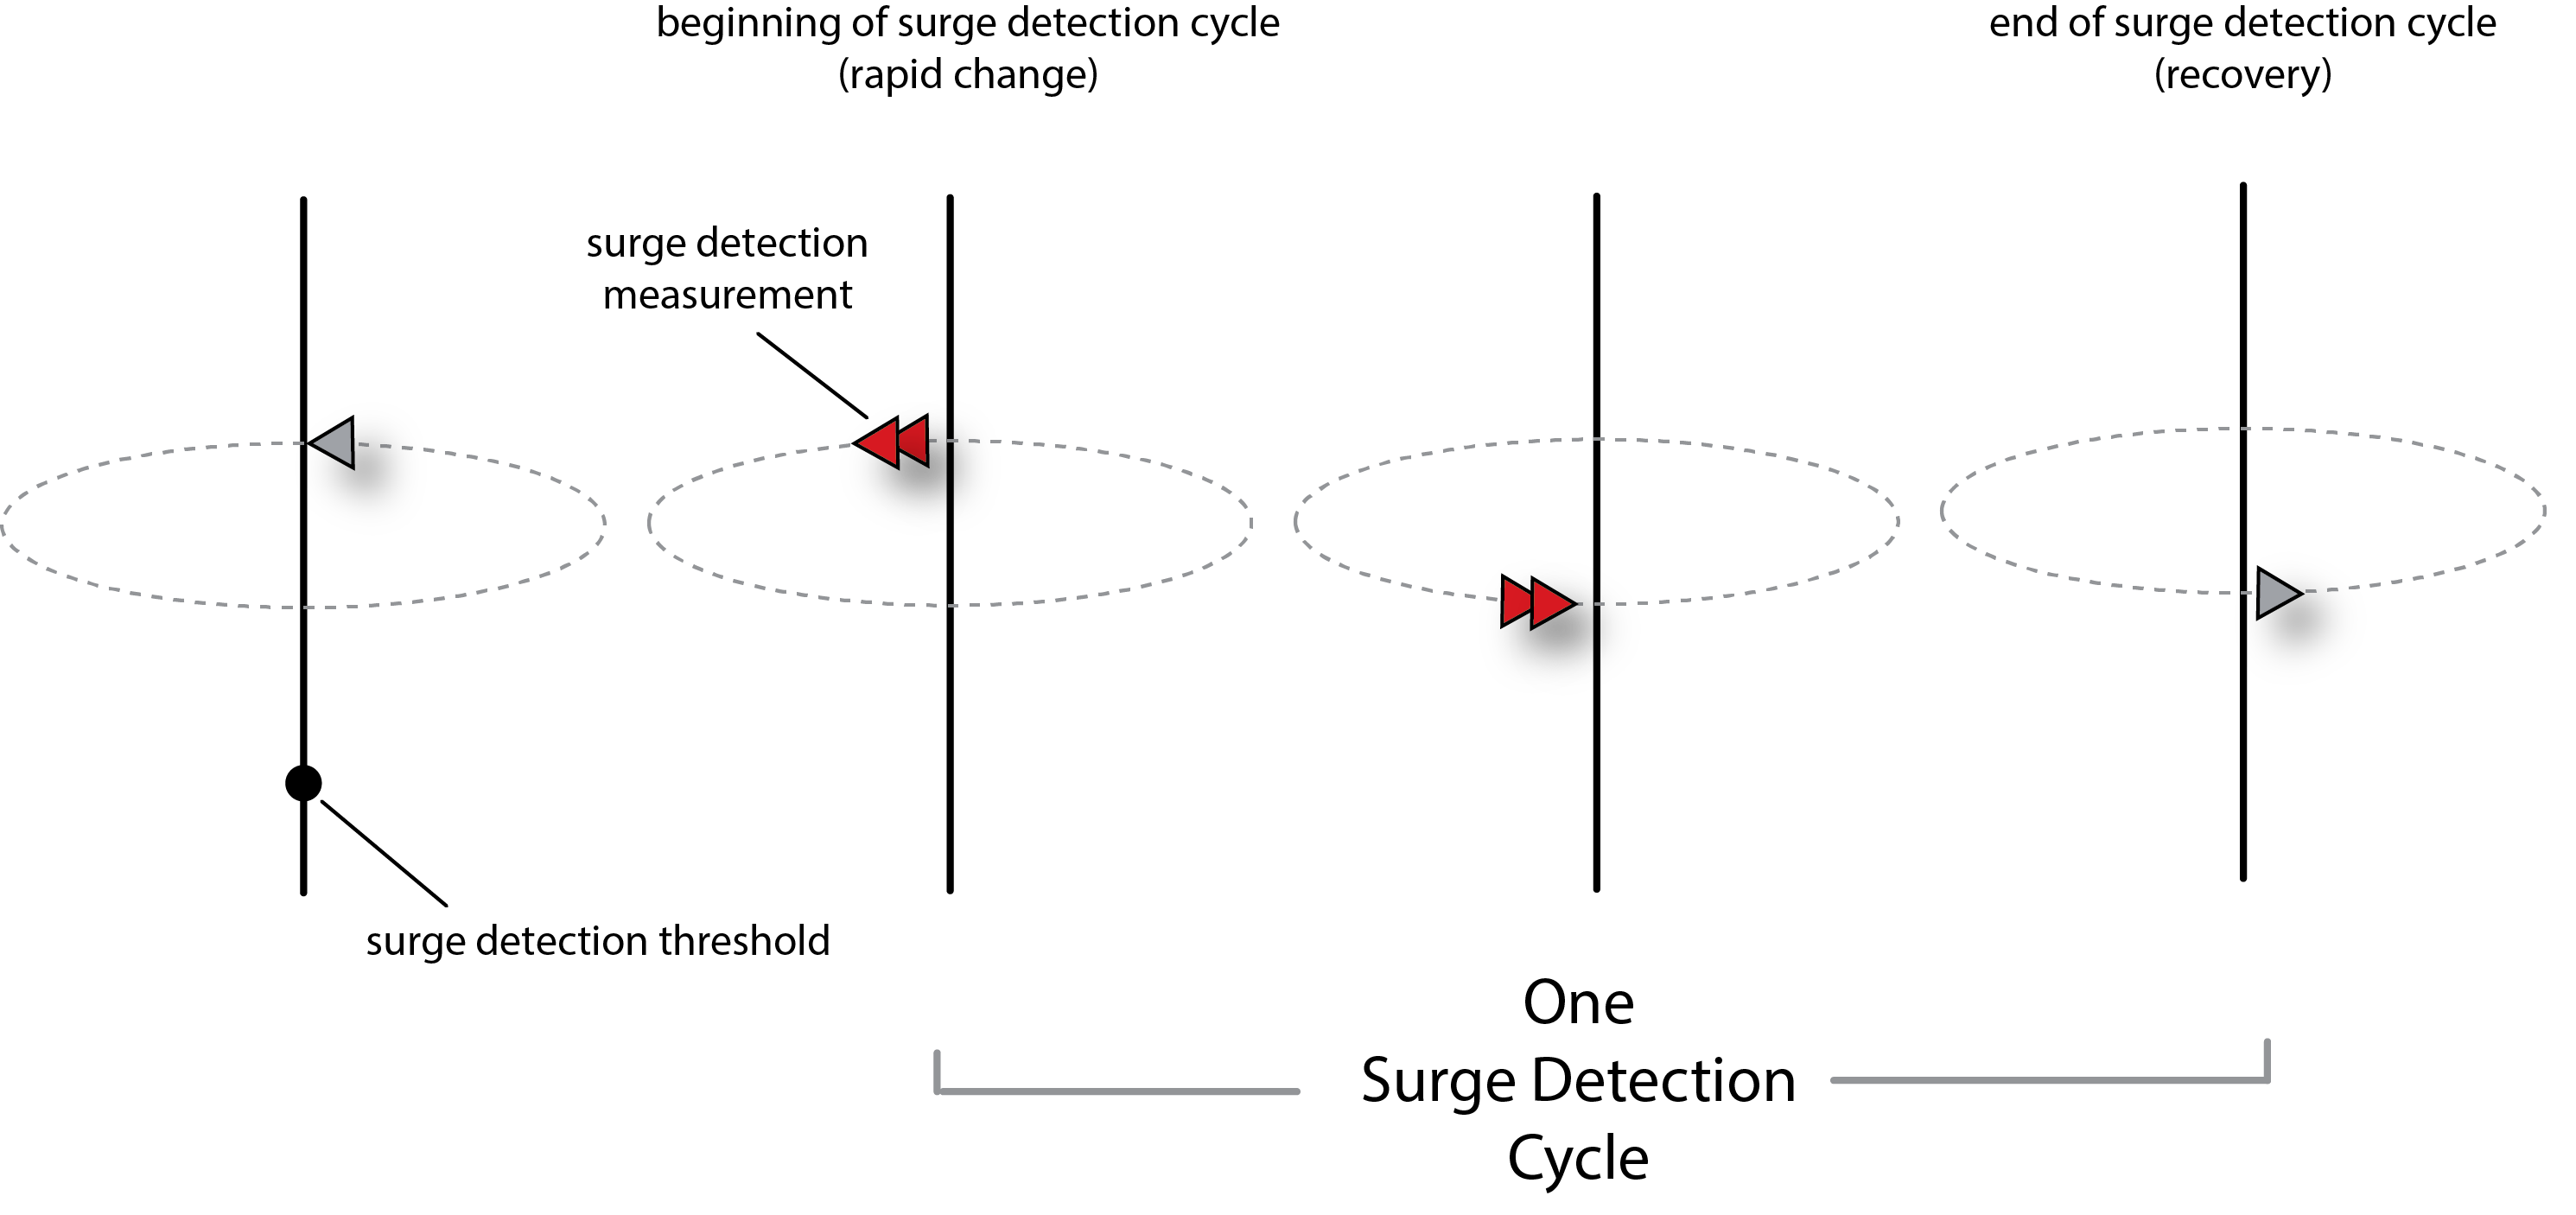 surge detection cycle